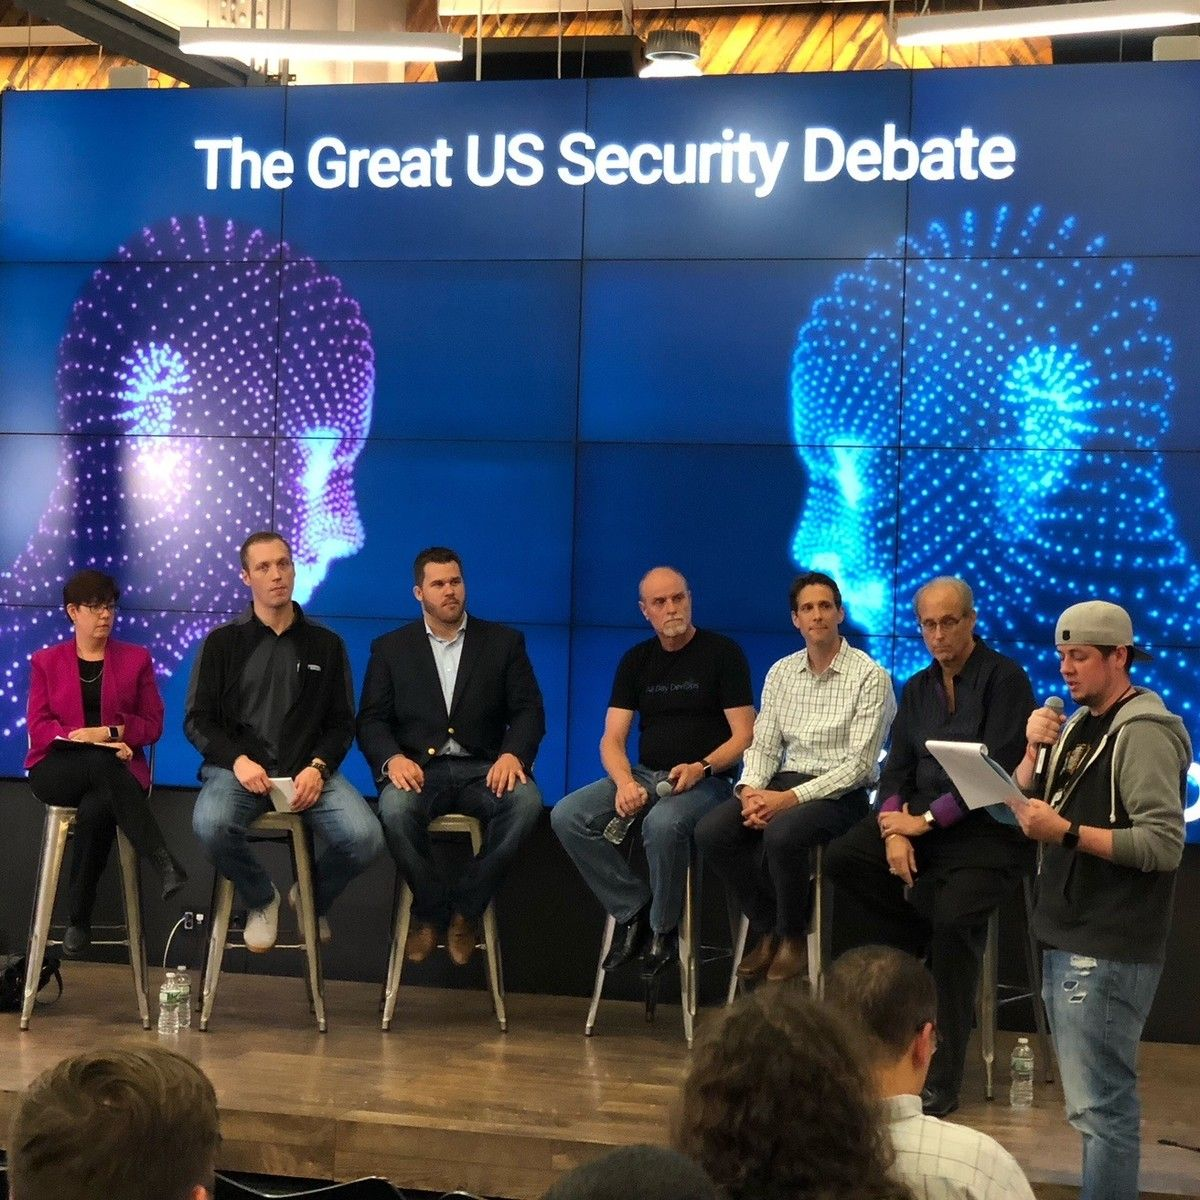 5 Things I Learned at the Great US Security Debate